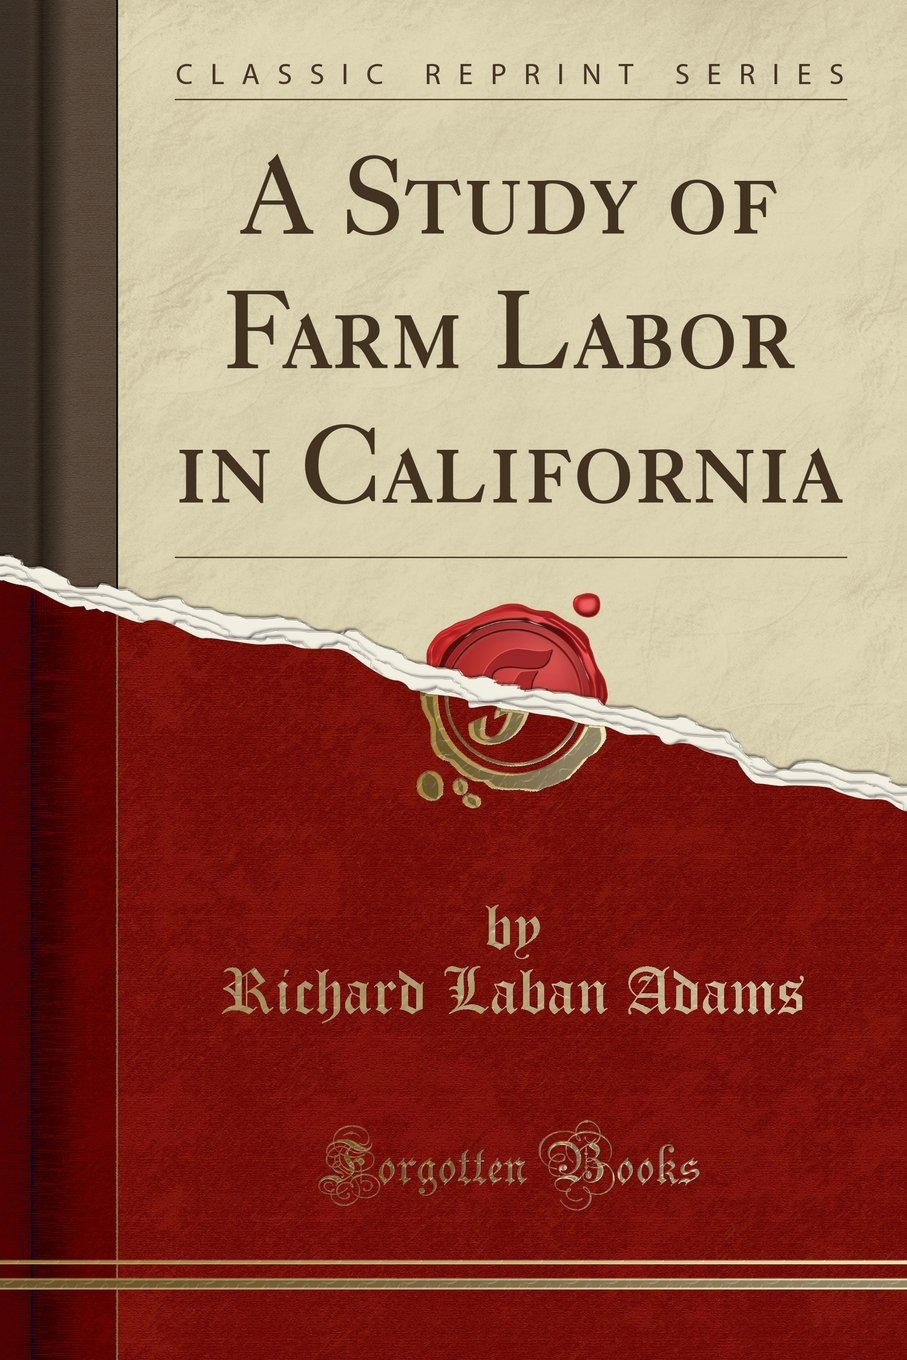 a-study-of-farm-labor-in-california-classic-reprint